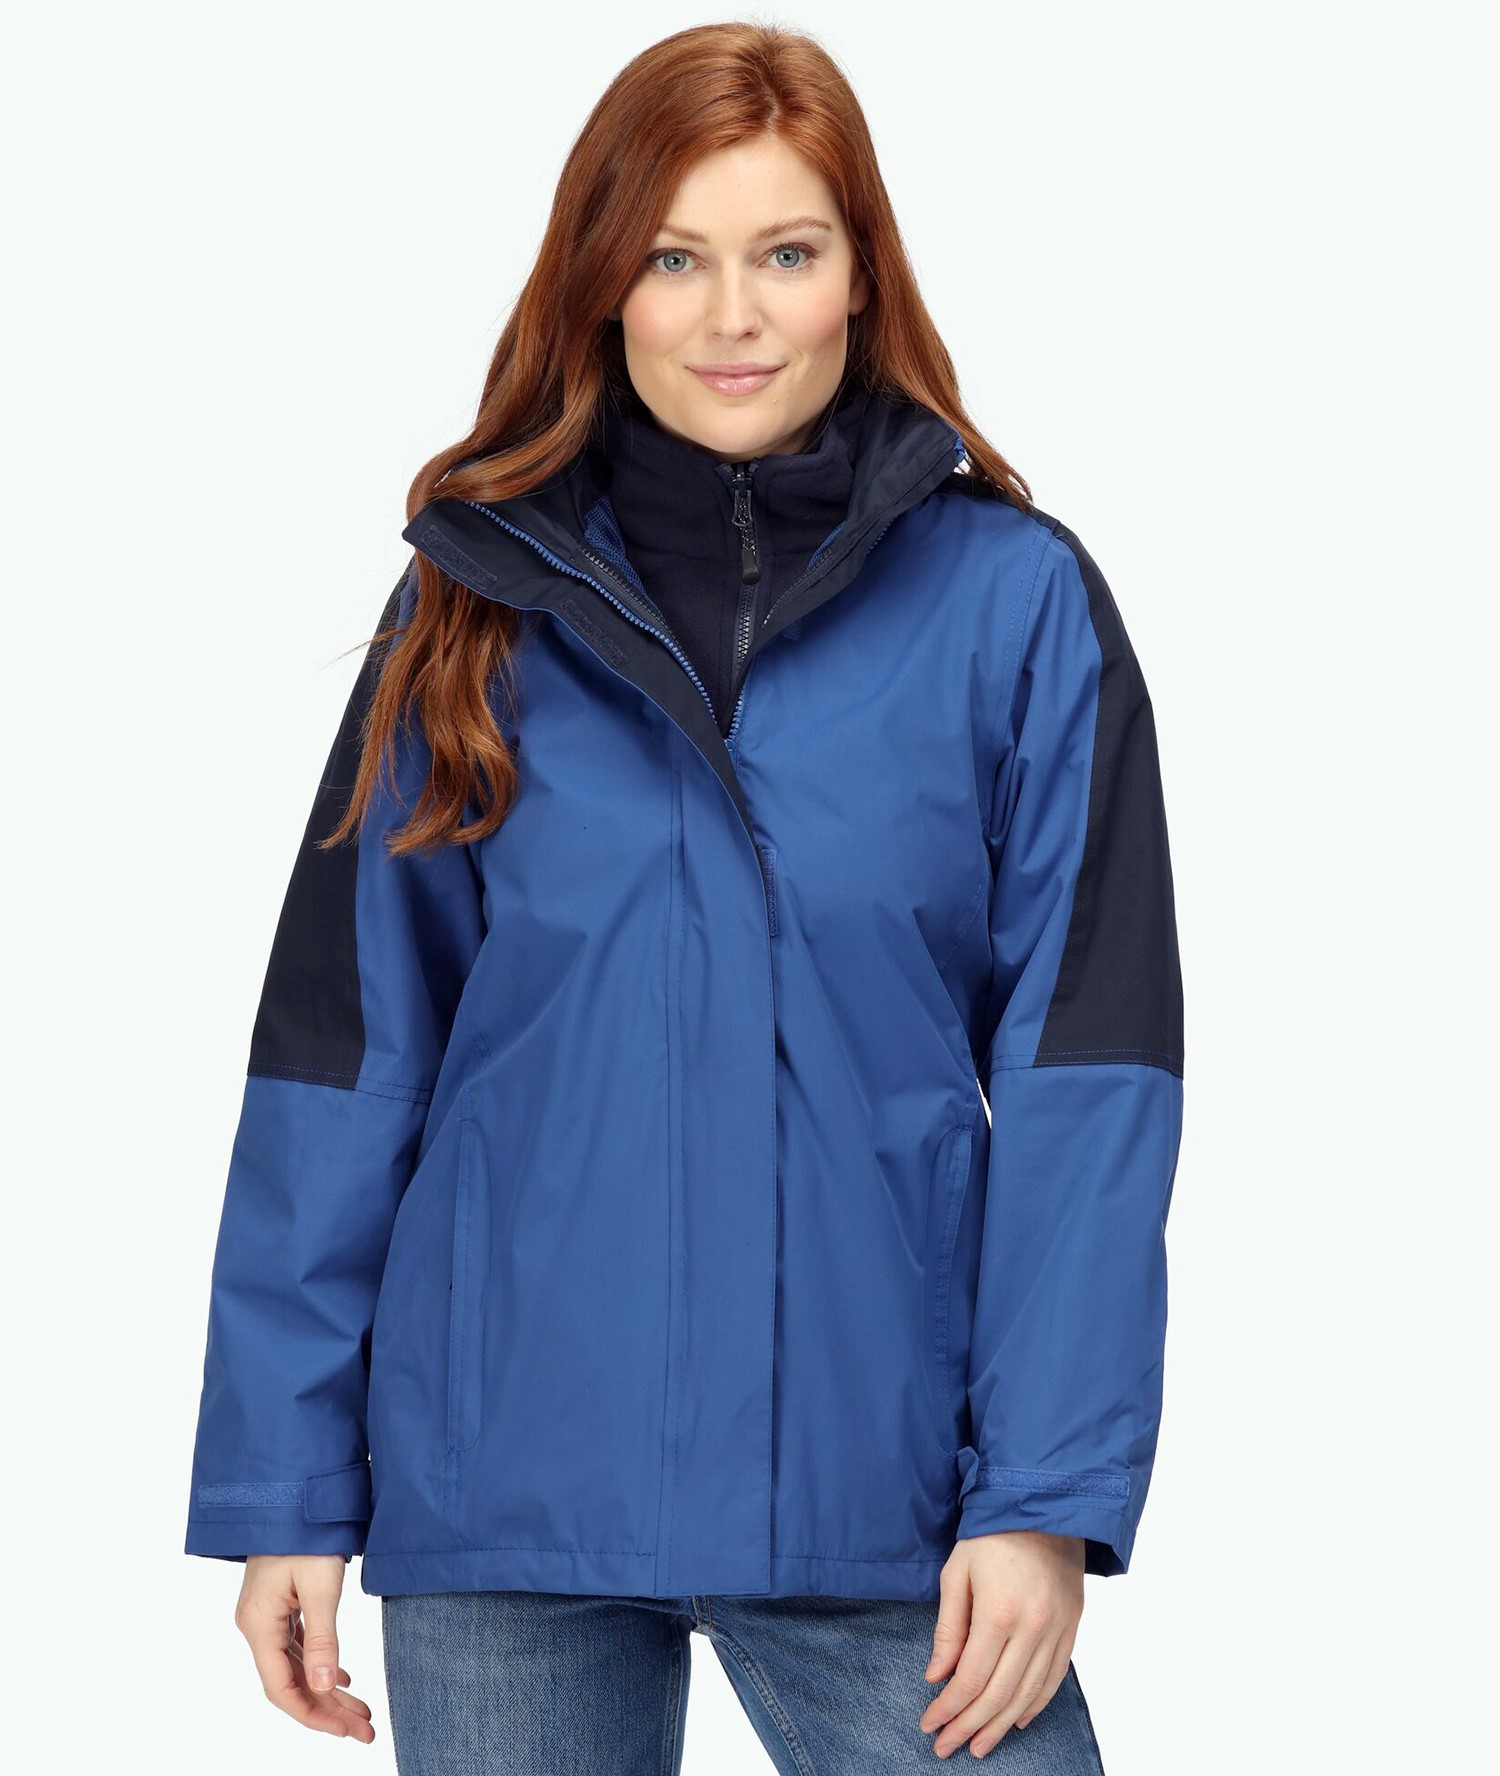 WOMEN'S 3-IN-1 JACKET REGATTA DEFENDER III